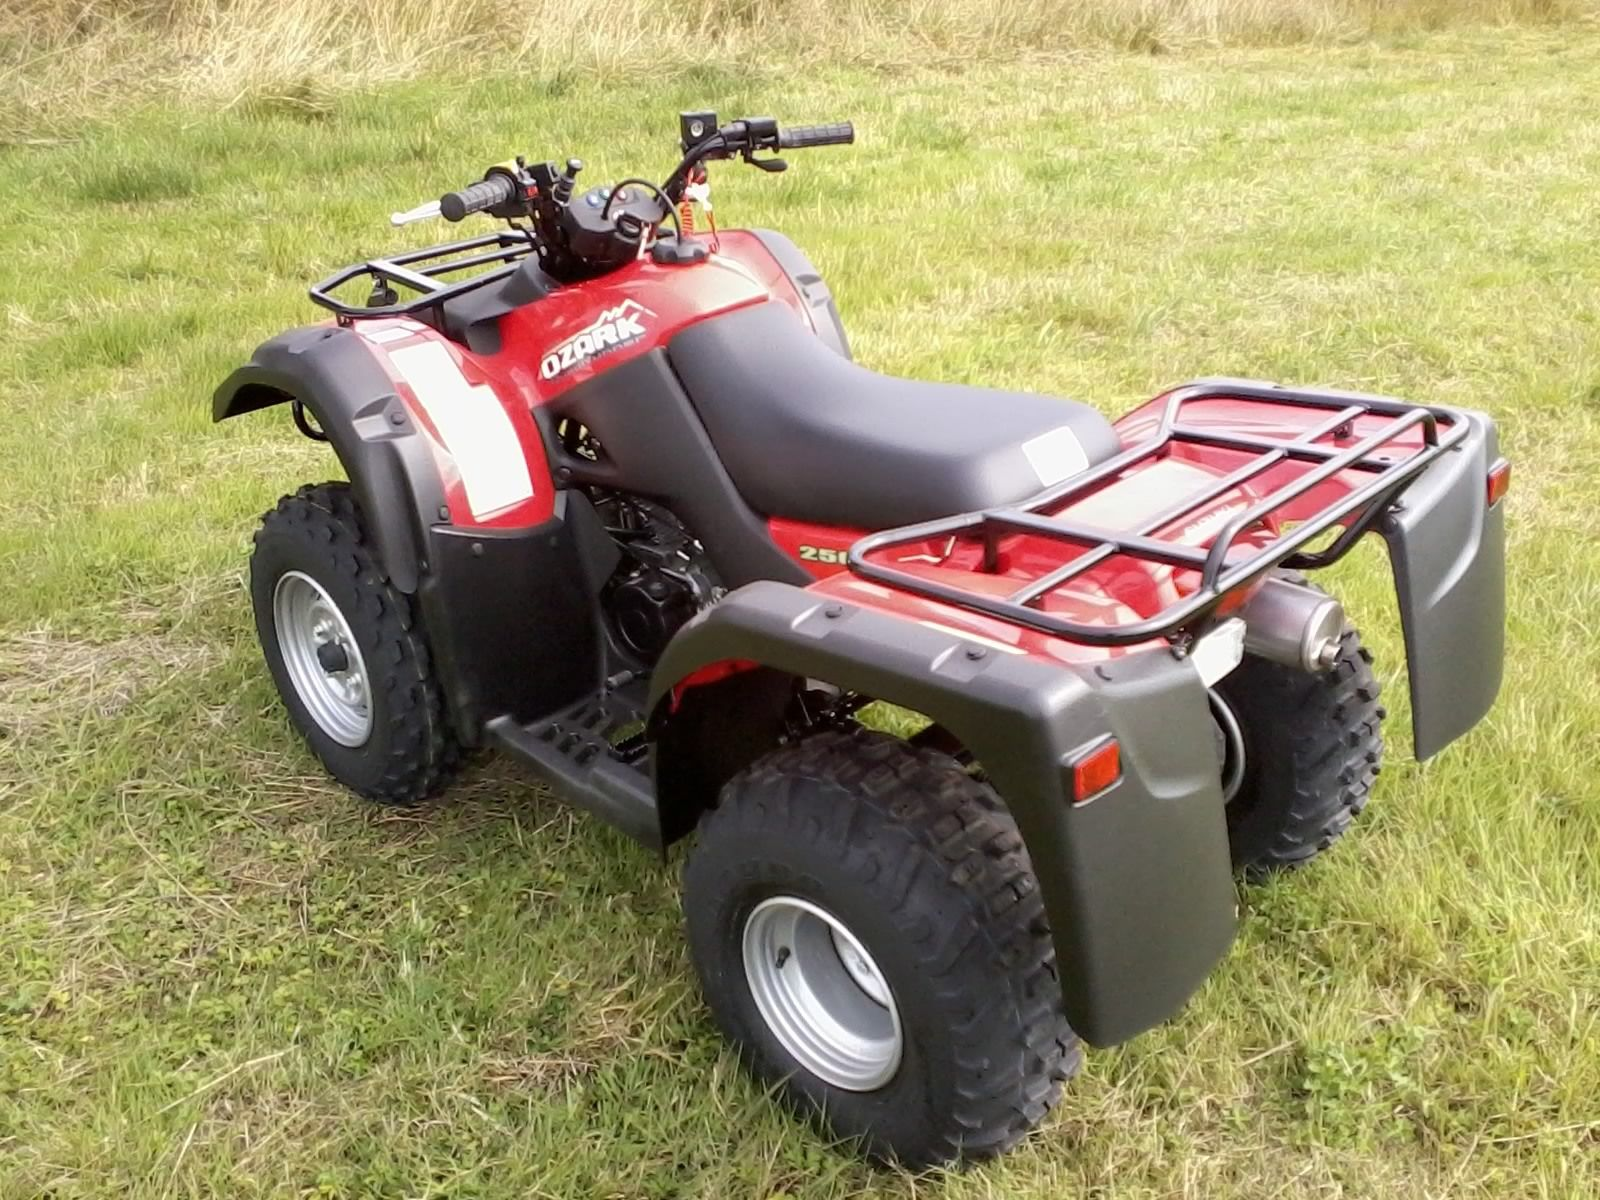 brand new suzuki qzark 250 quad bike 2014 model farm atv 2wd 2 years warranty. Black Bedroom Furniture Sets. Home Design Ideas